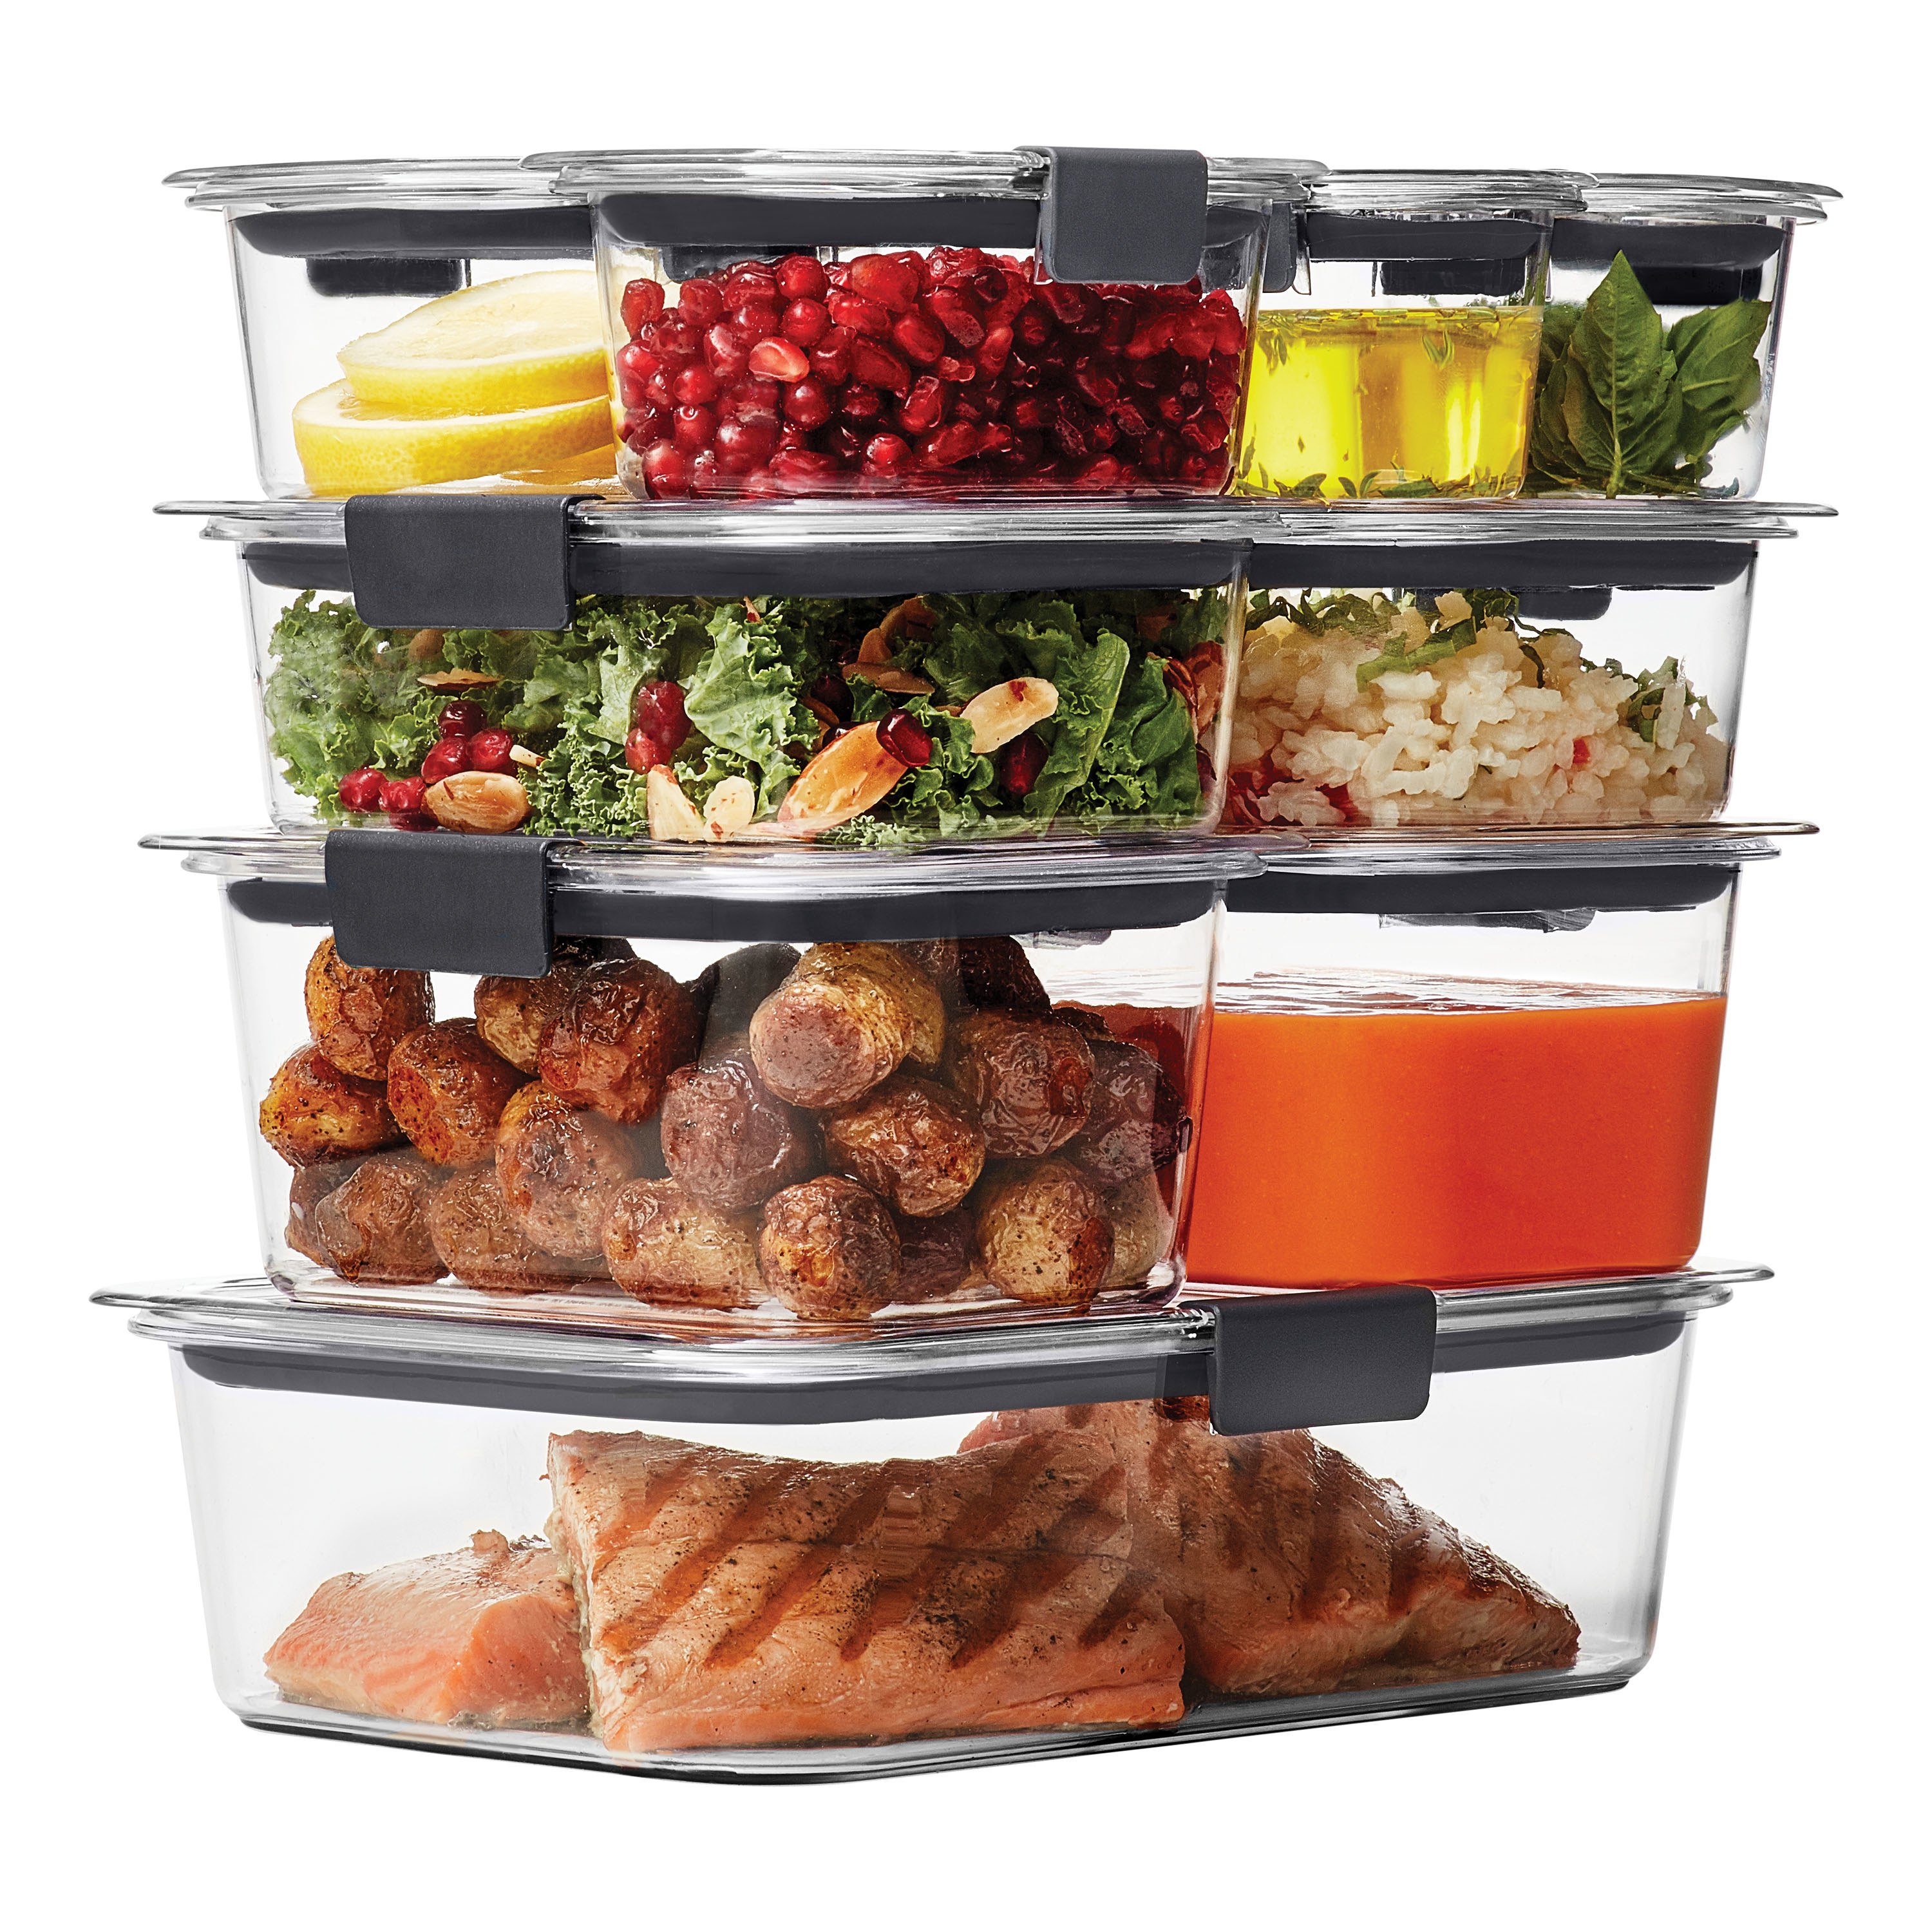 Nine clear food storage containers stacked on top of one another